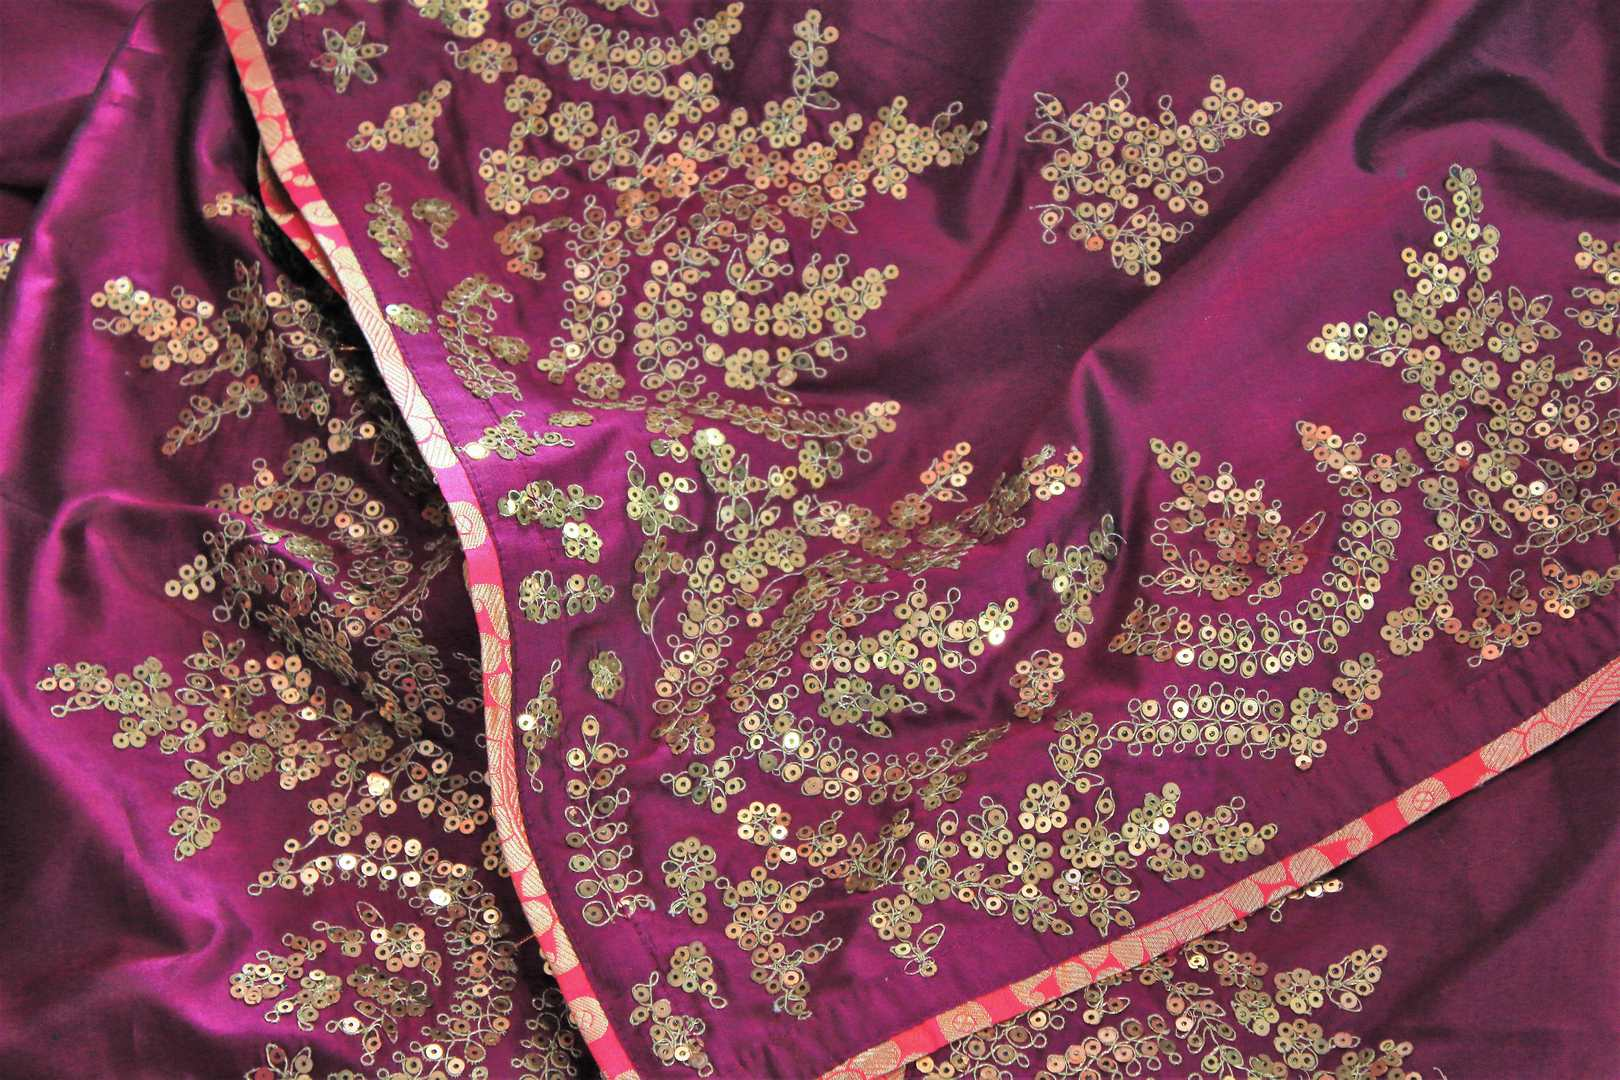 Buy purple silk saree online in USA with ticki work. The saree is an alluring choice for a traditional look at weddings and special occasions. Buy more such Indian designer sarees in USA at Pure Elegance exclusive fashion store or shop online at the comfort of your home.-details